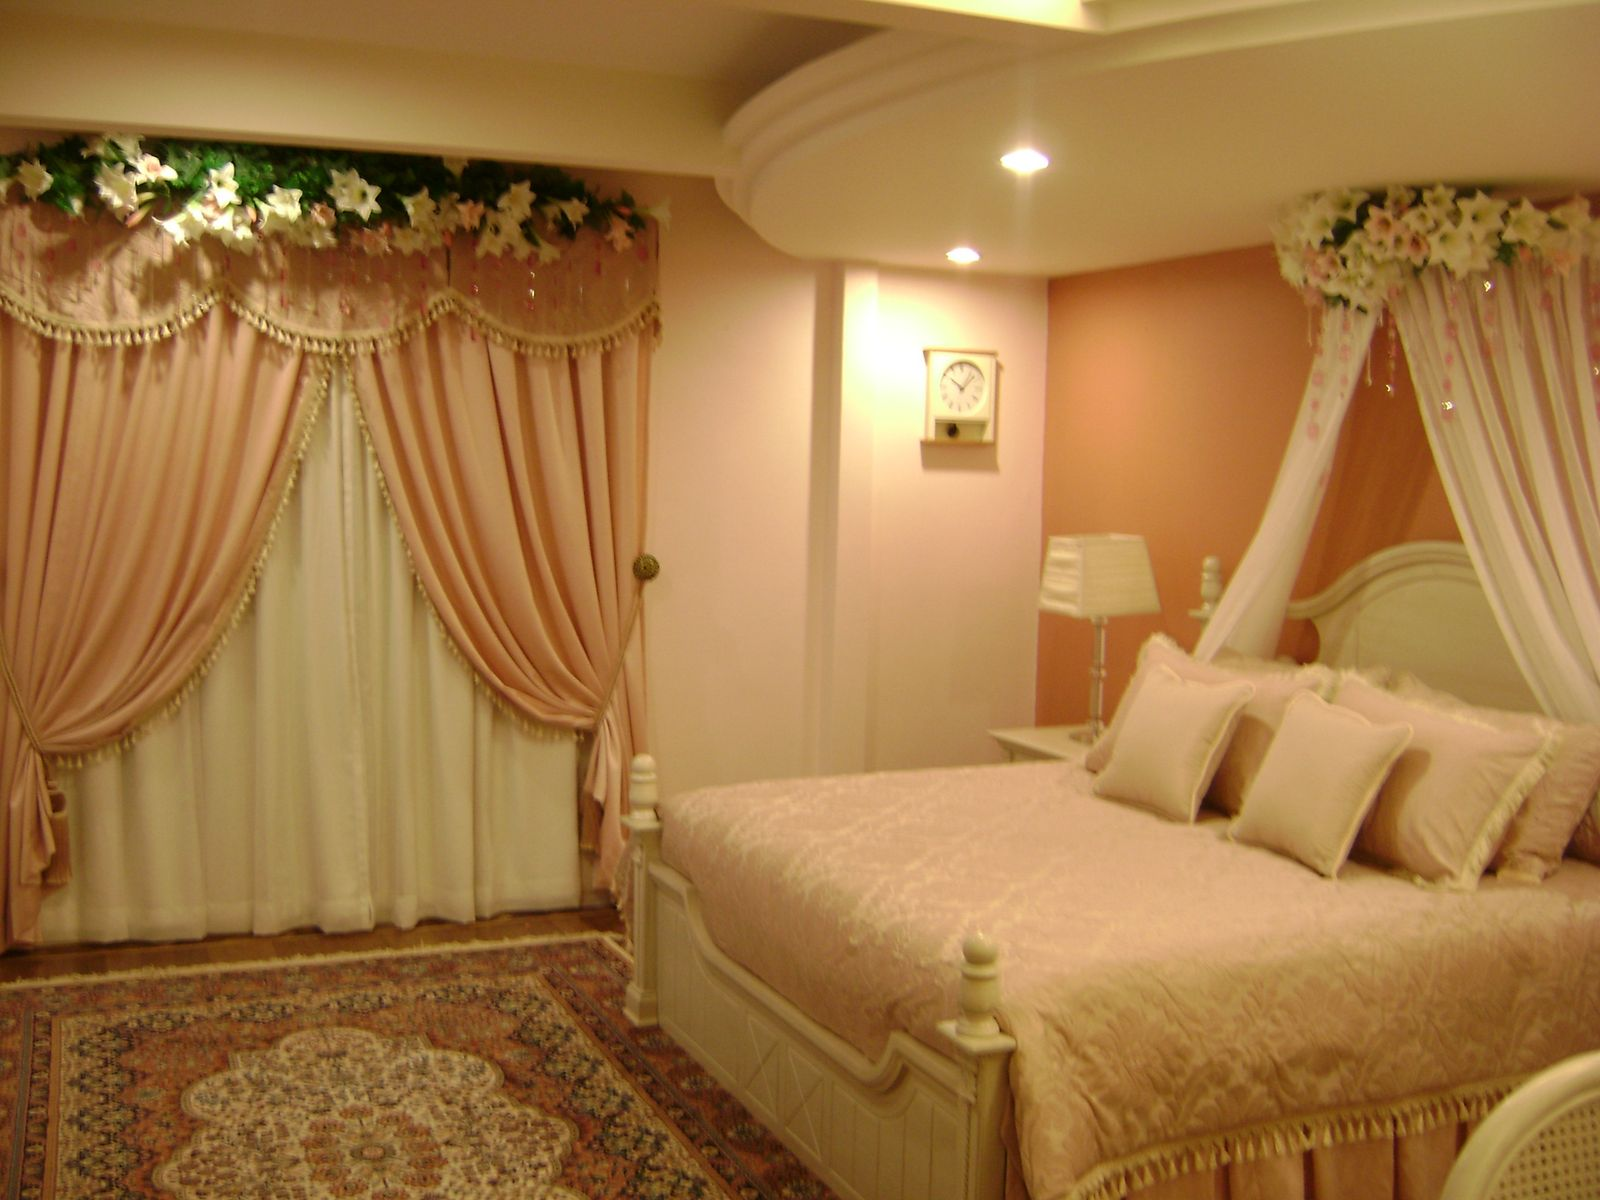 Wedding Room Decoration Ideas Of Girlsvilla Wedding Room Decoration